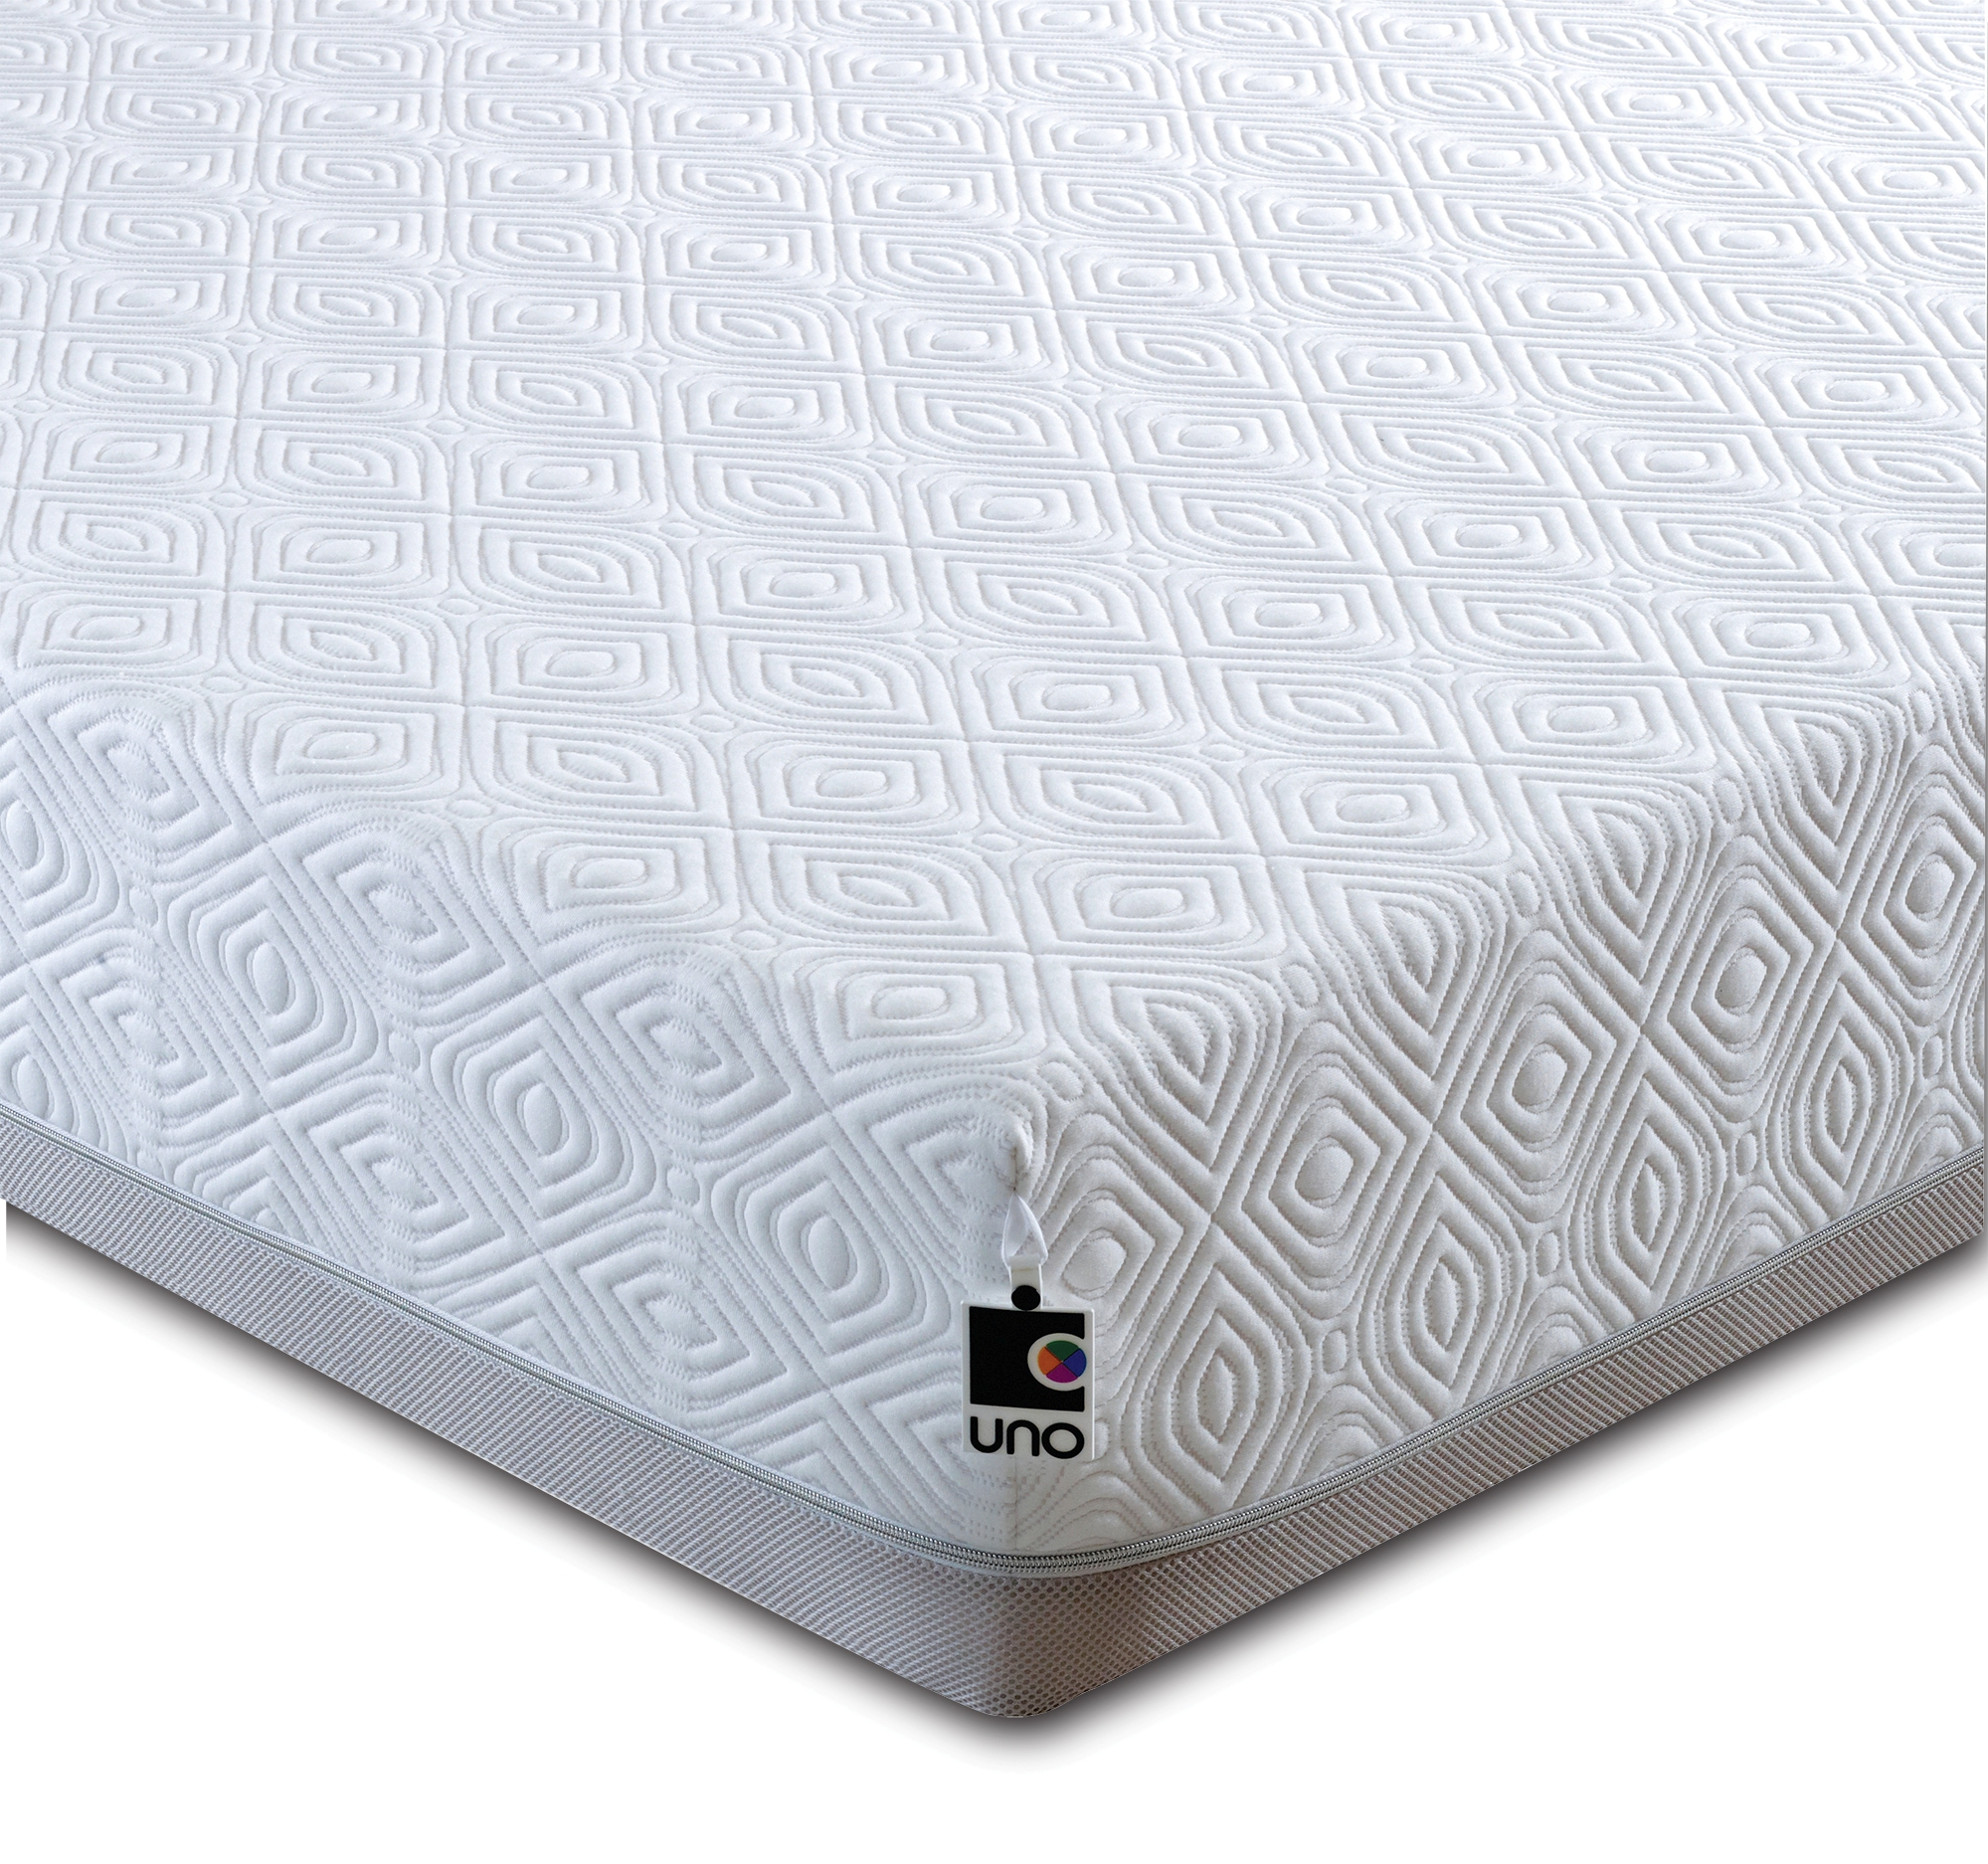 Uno double pocket 2000 memory foam mattress